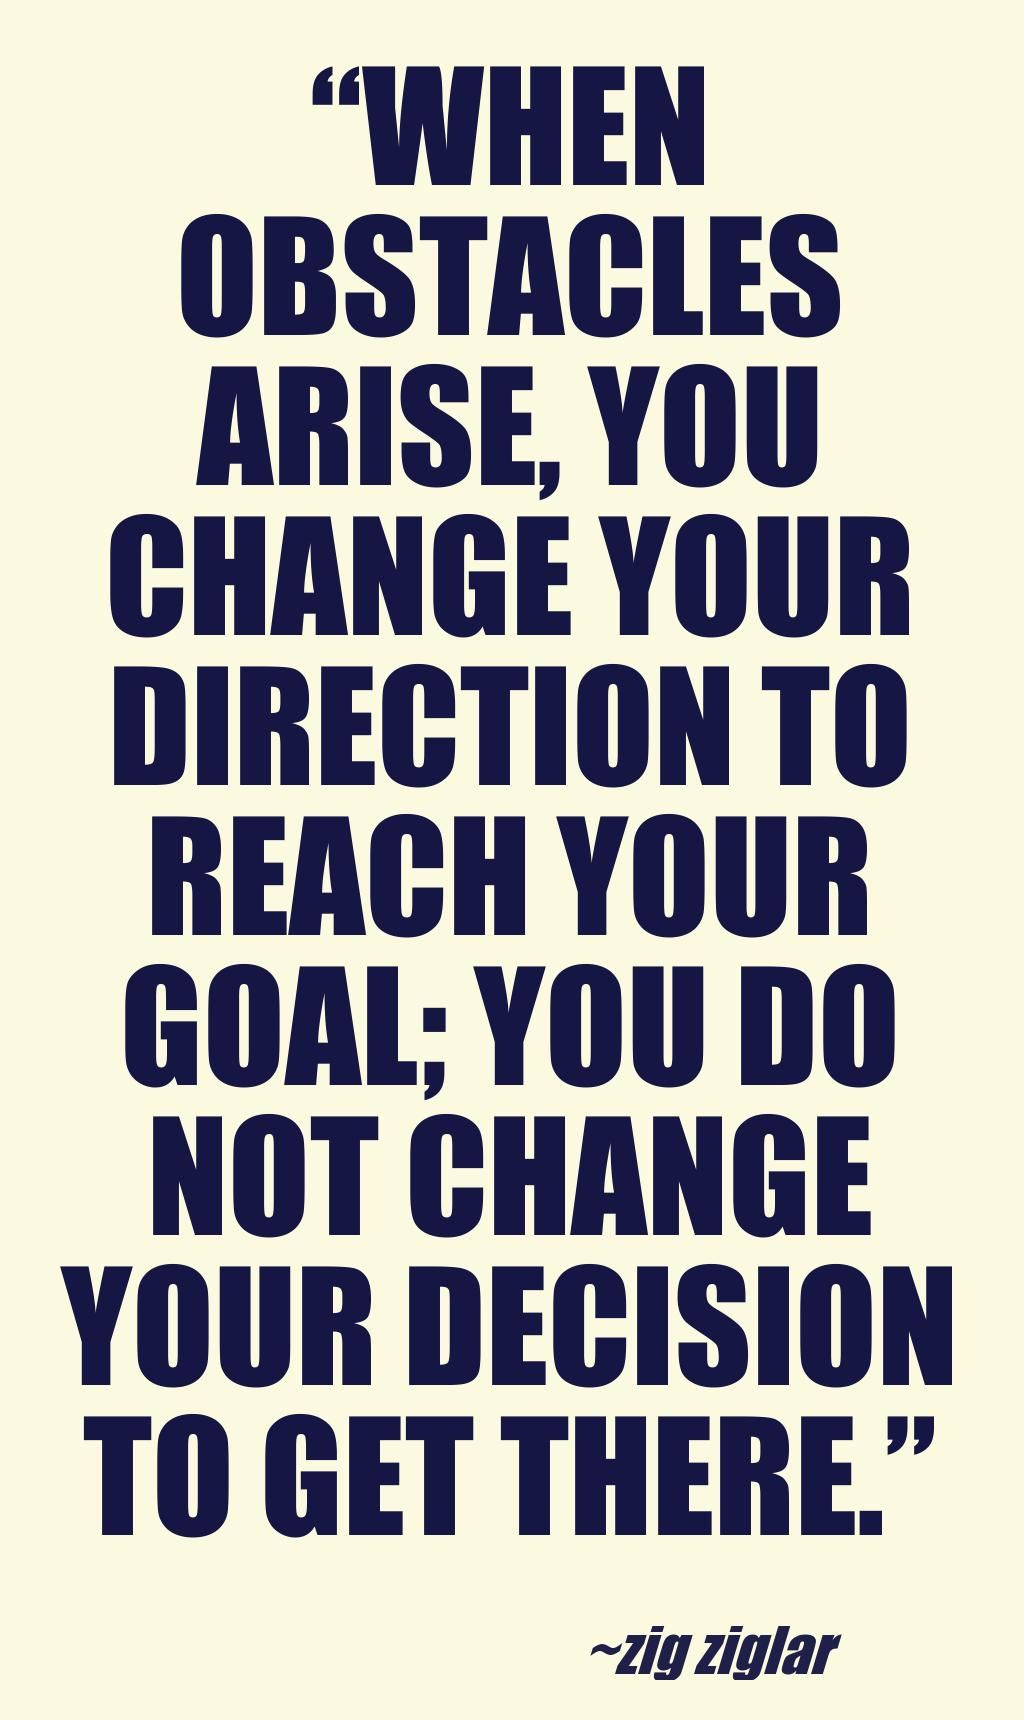 Quotes About Reaching Your Goals When obstacles arise, you change your direction to reach your goal  Quotes About Reaching Your Goals